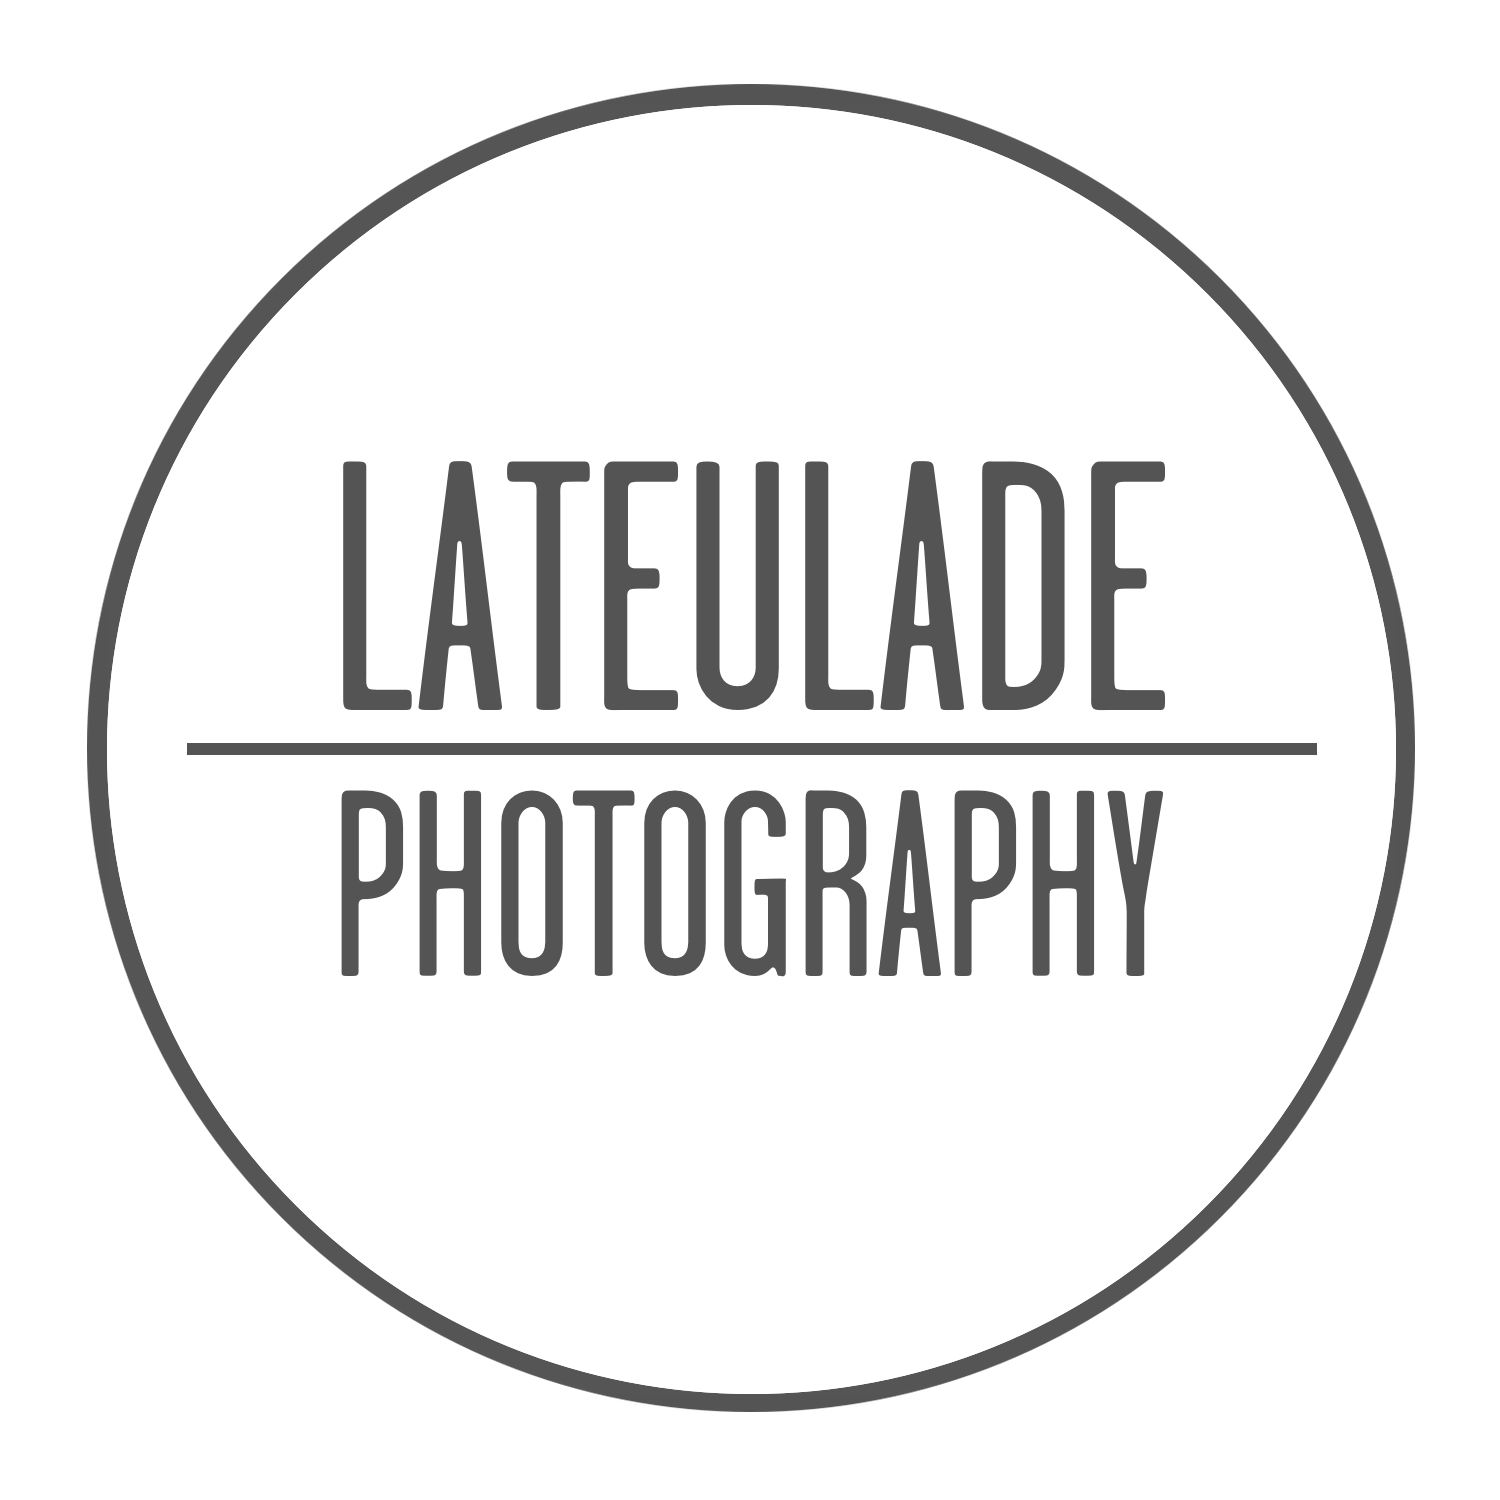 Lateulade Photography